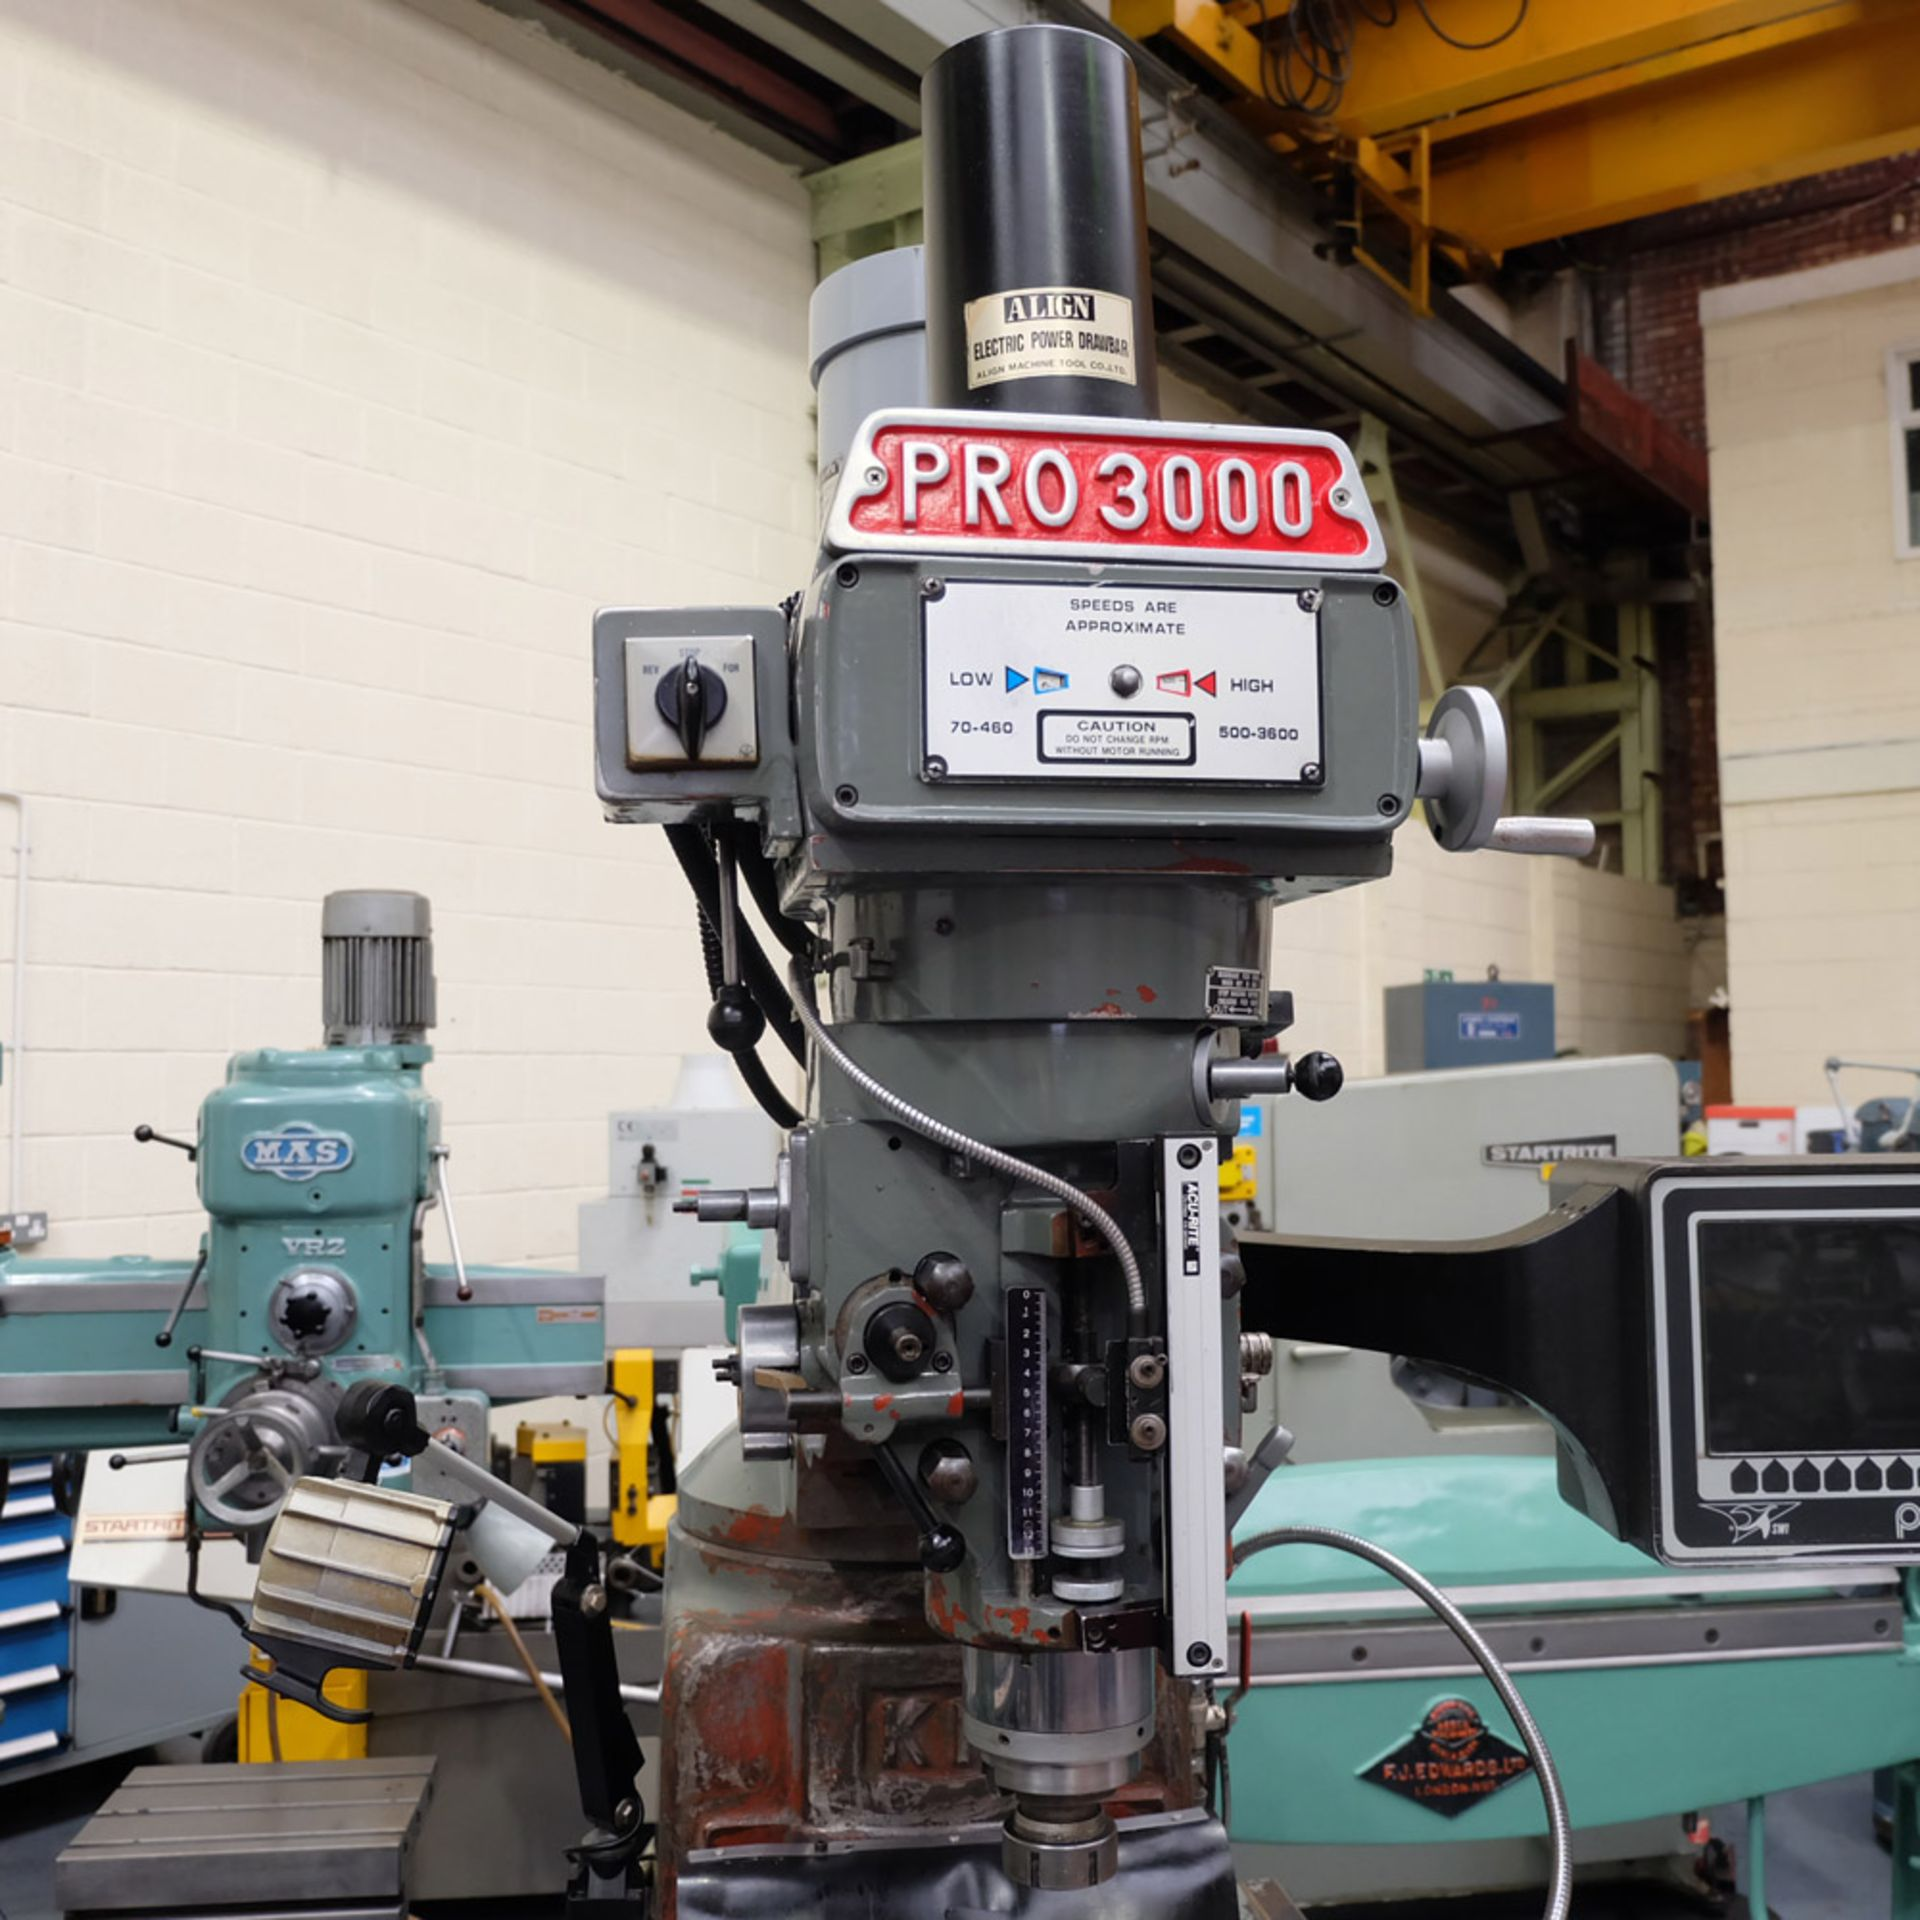 XYZ PRO 3000 Two Axis CNC Milling Machine.ProtoTrak MX2 Two Axis Programmable Control. - Image 2 of 9